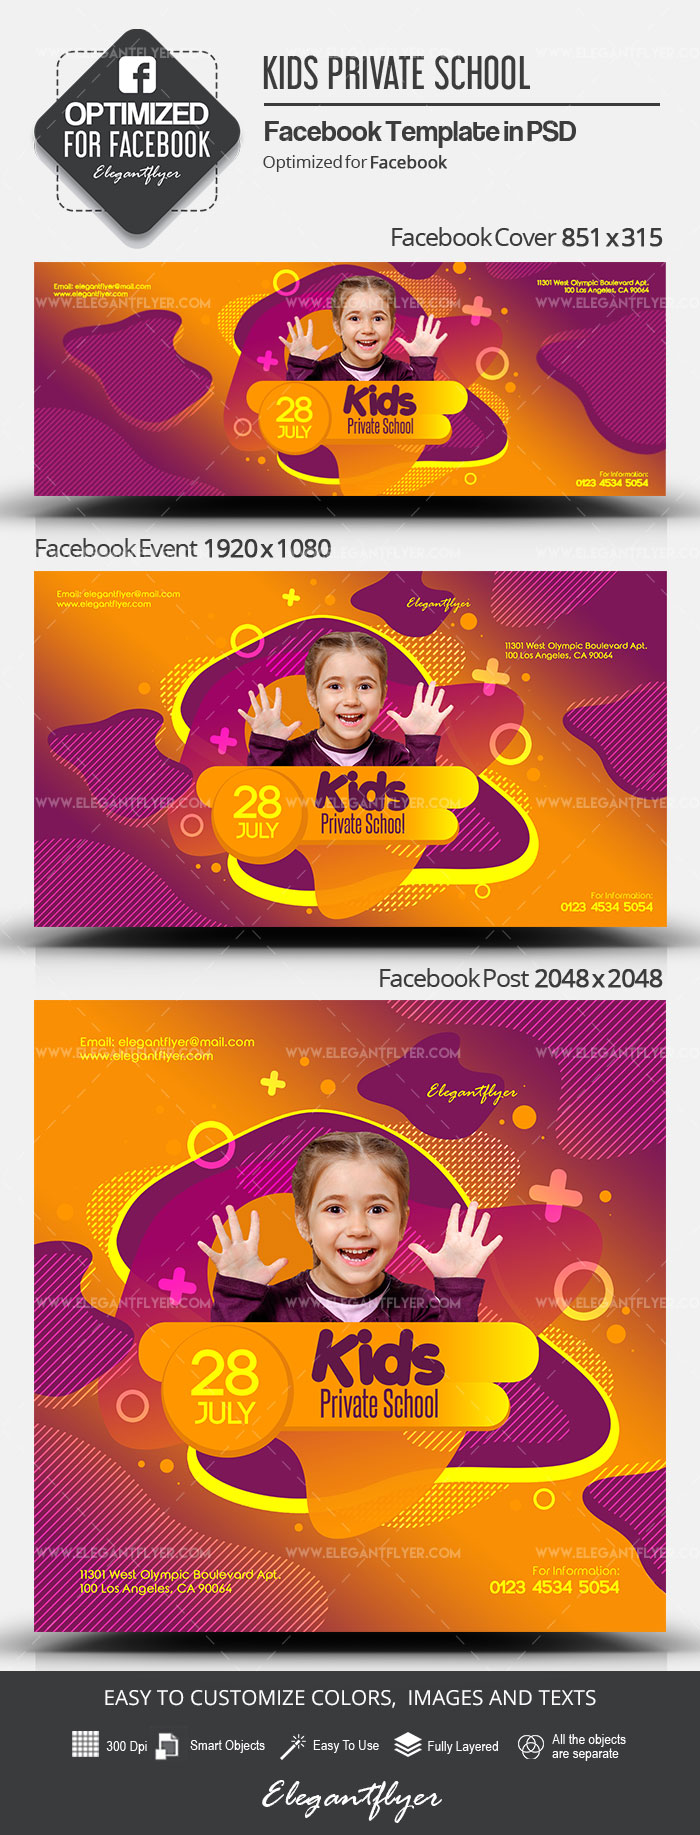 Kids Private School – Facebook Cover Template in PSD + Post + Event cover